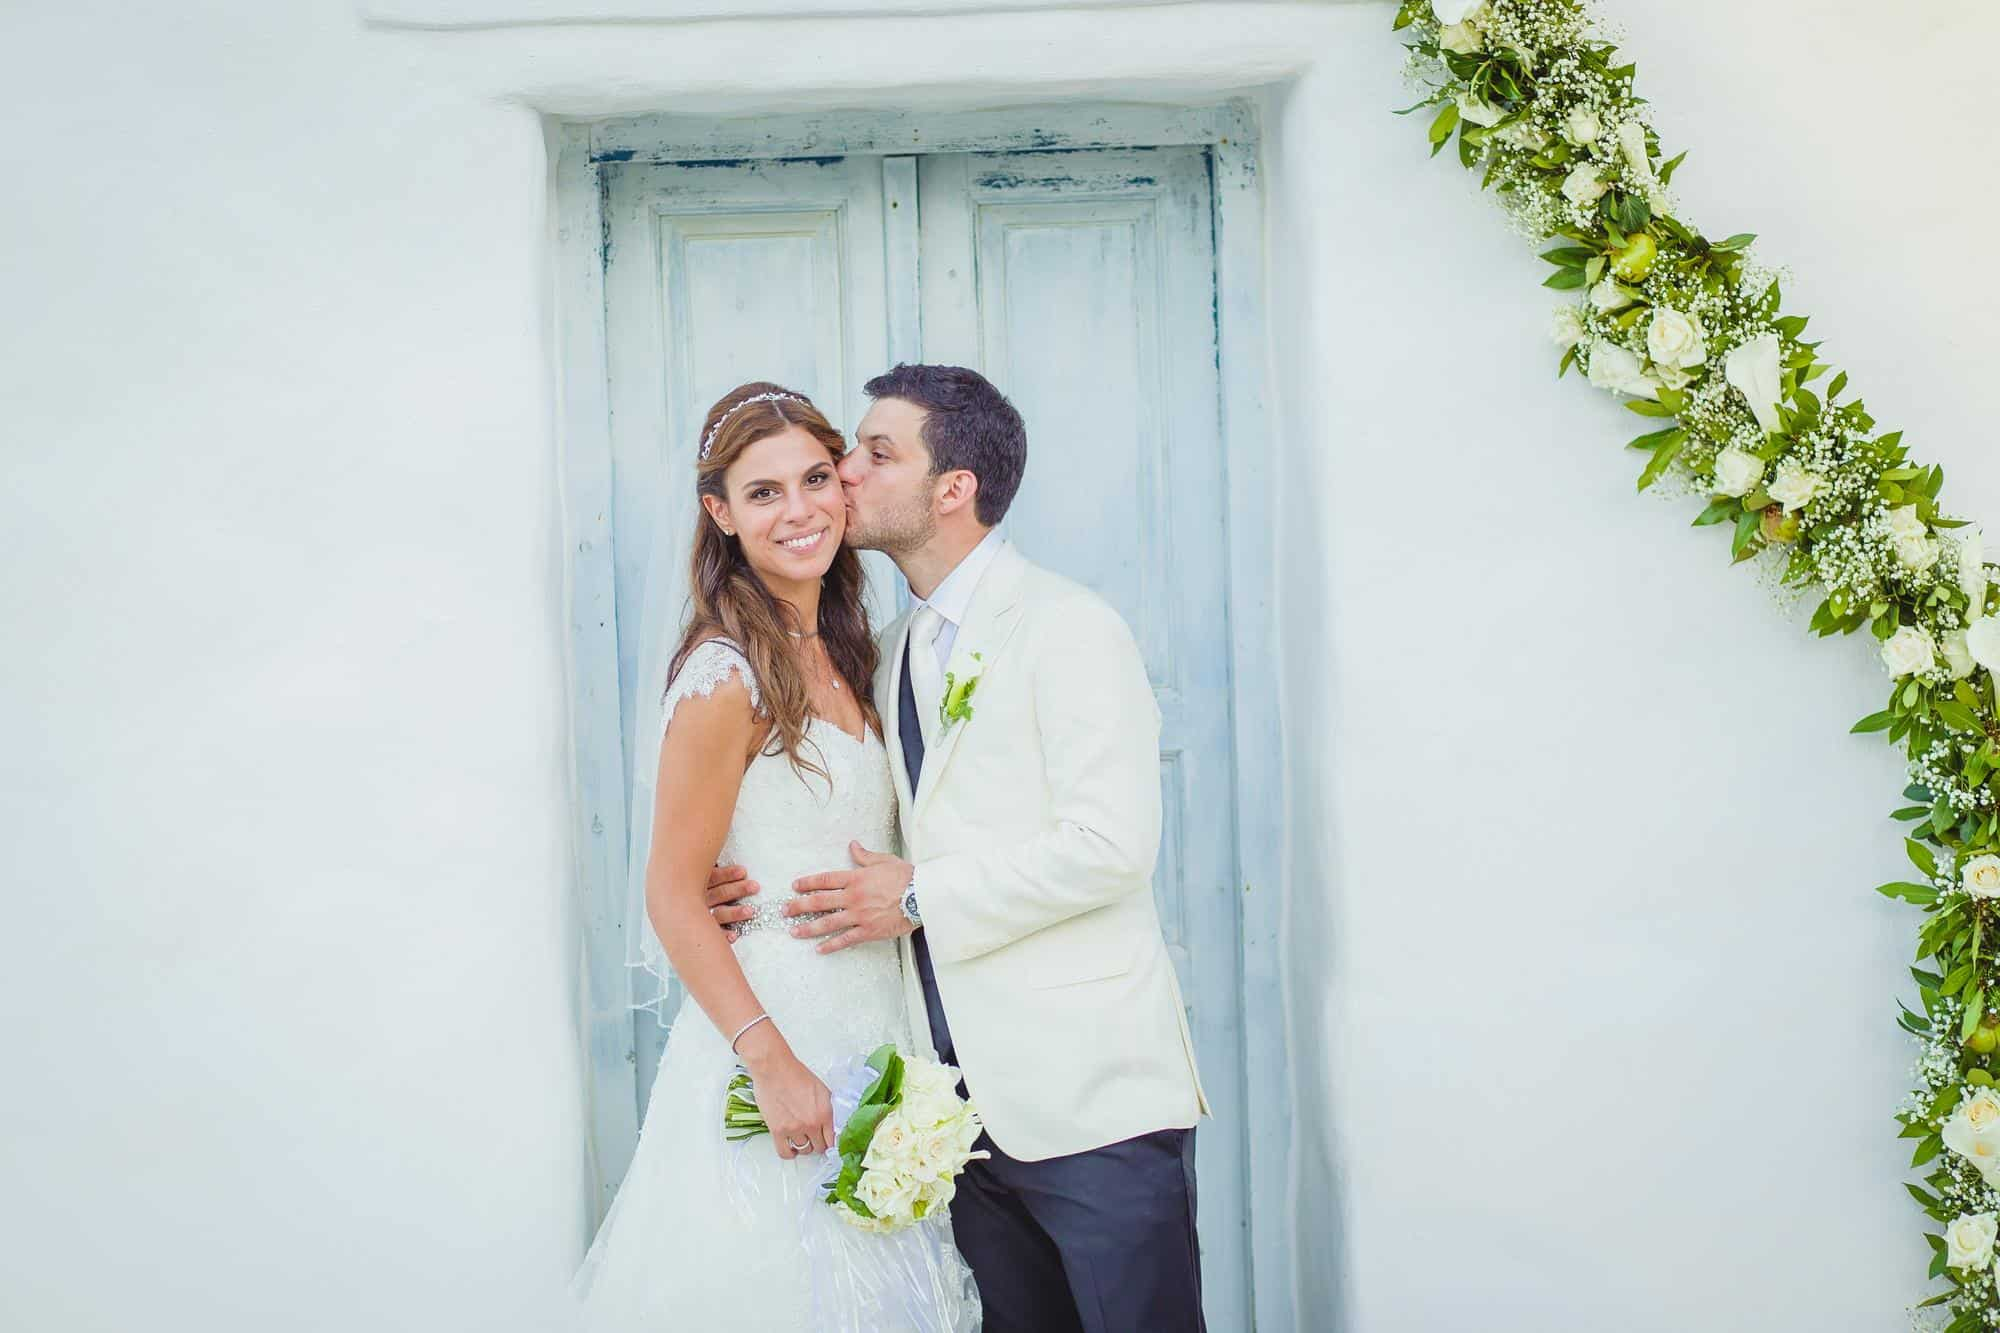 Photographic -  Destination wedding photography Wedding-in-island-athens-riviera-0051-2501 ANTONIS & STAICY | WEDDING IN ISLASND - ATHENS RIVERA